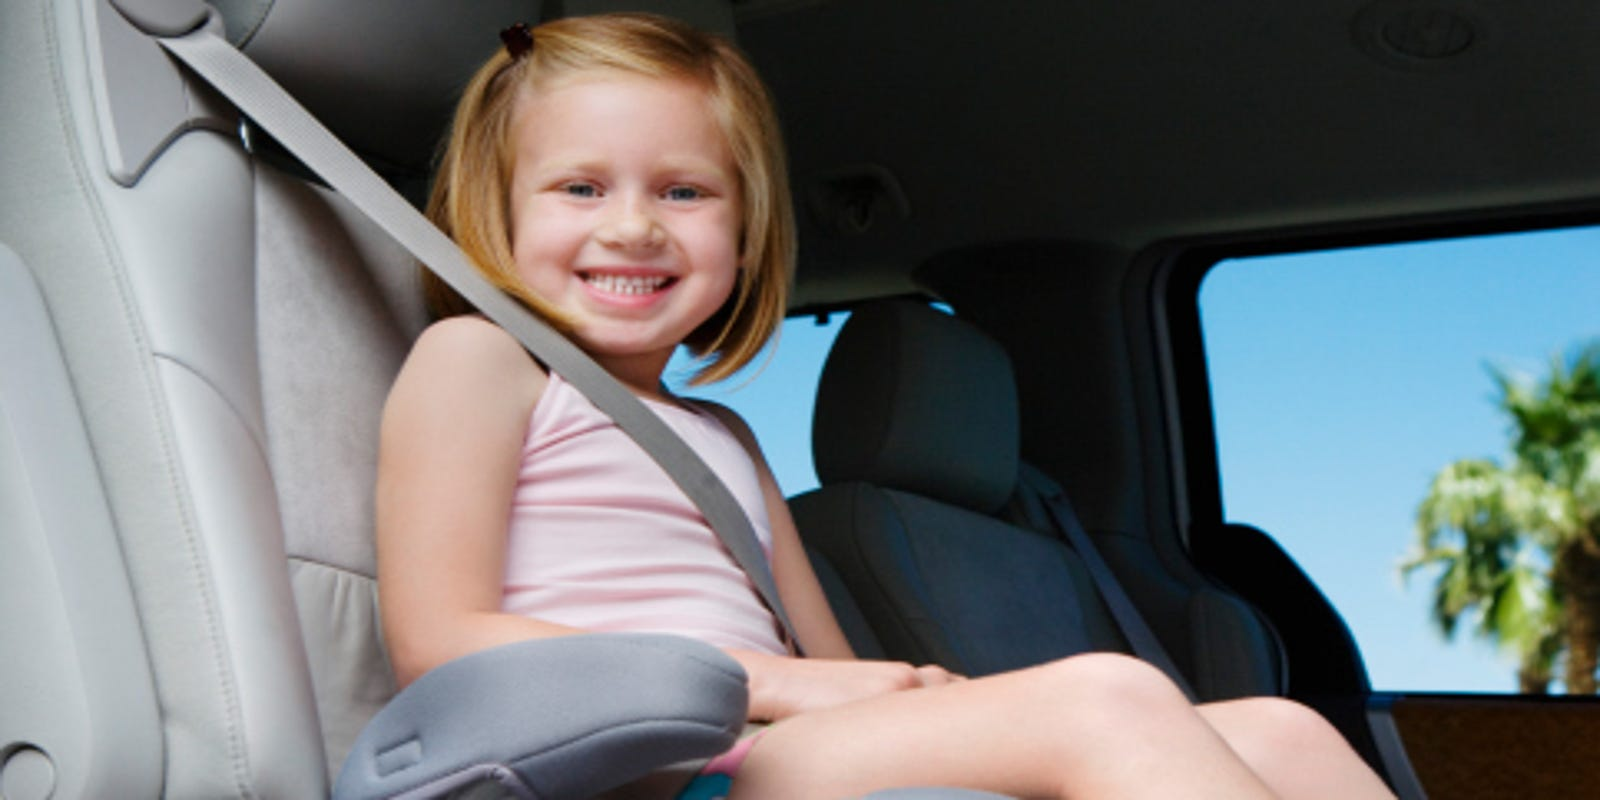 Does Your Child Need A Booster Seat